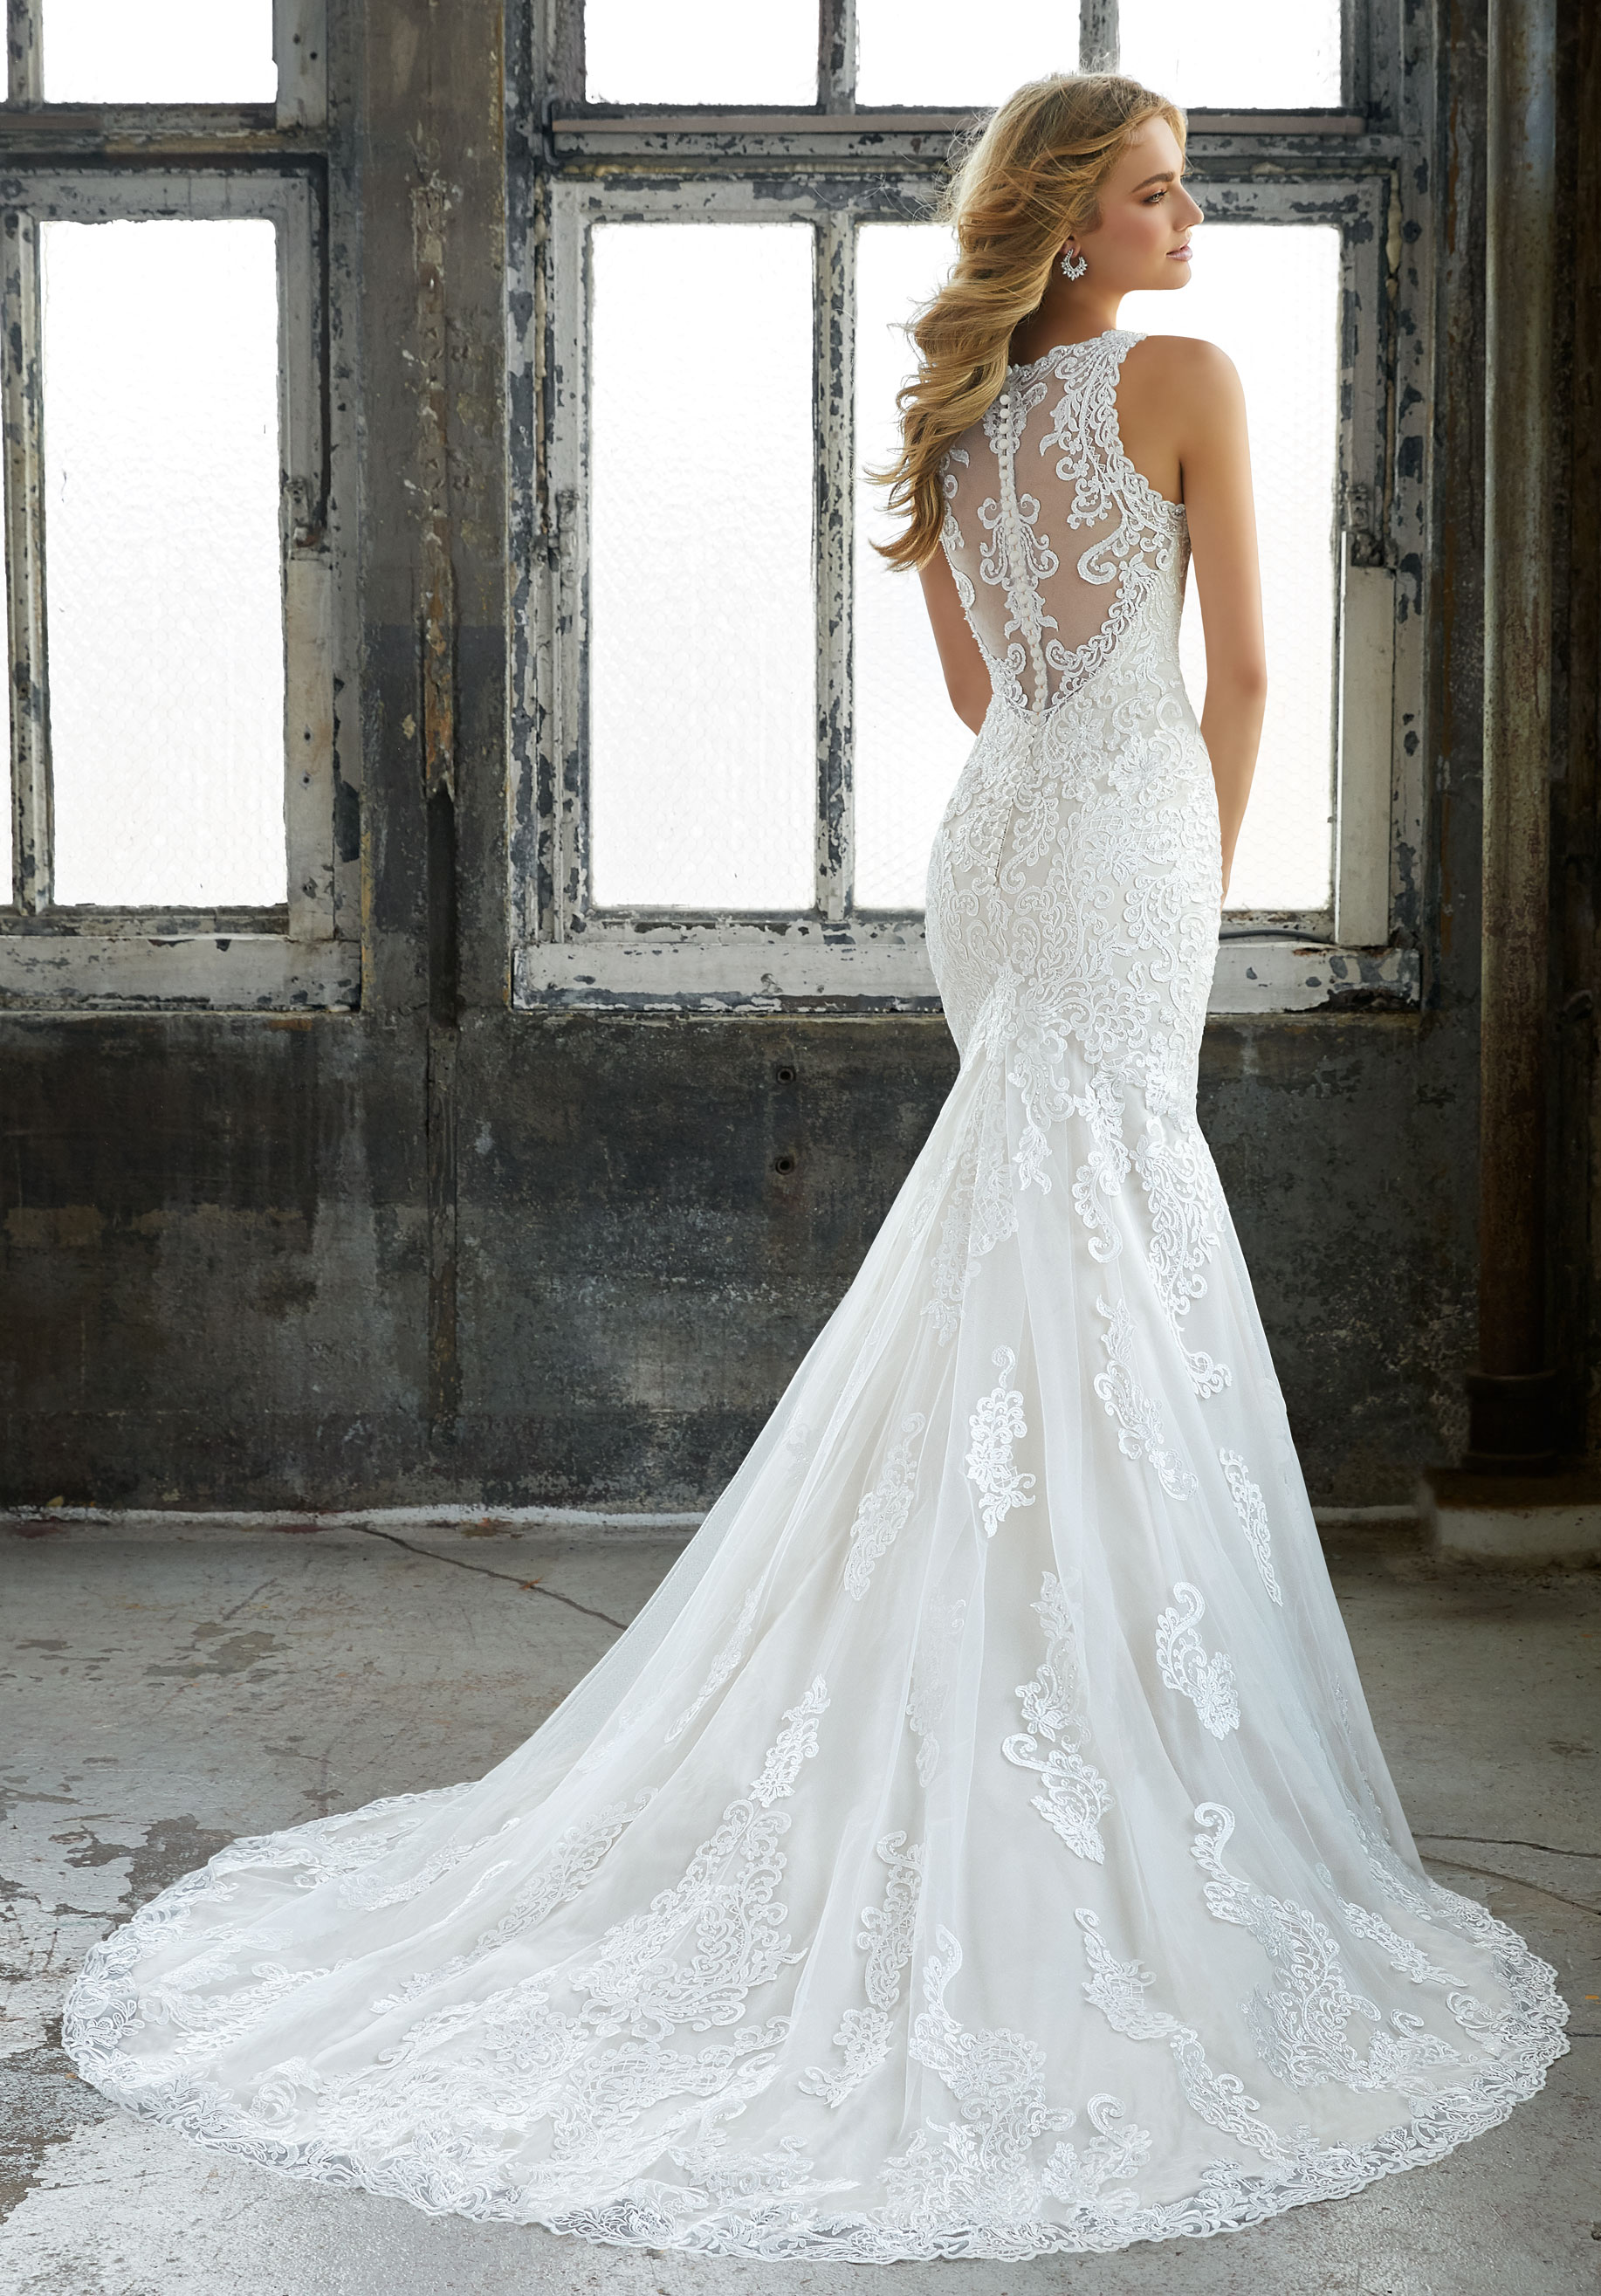 Morilee - The perfect wedding dress should be a reflection of your style and personality. The signature Morilee by Madeline Gardner Collection puts its focus on the details, and will leave you with so many unique choices to fit each and every type of bride. Perhaps you're picturing walking down the aisle in an ultra glamorous mermaid style. Our intricate crystal beaded embroidery will be sure to give you that extra sparkle. And for those hopeless romantics, look no further than our fairytale like ball gowns with their vintage lace and delicate necklines.